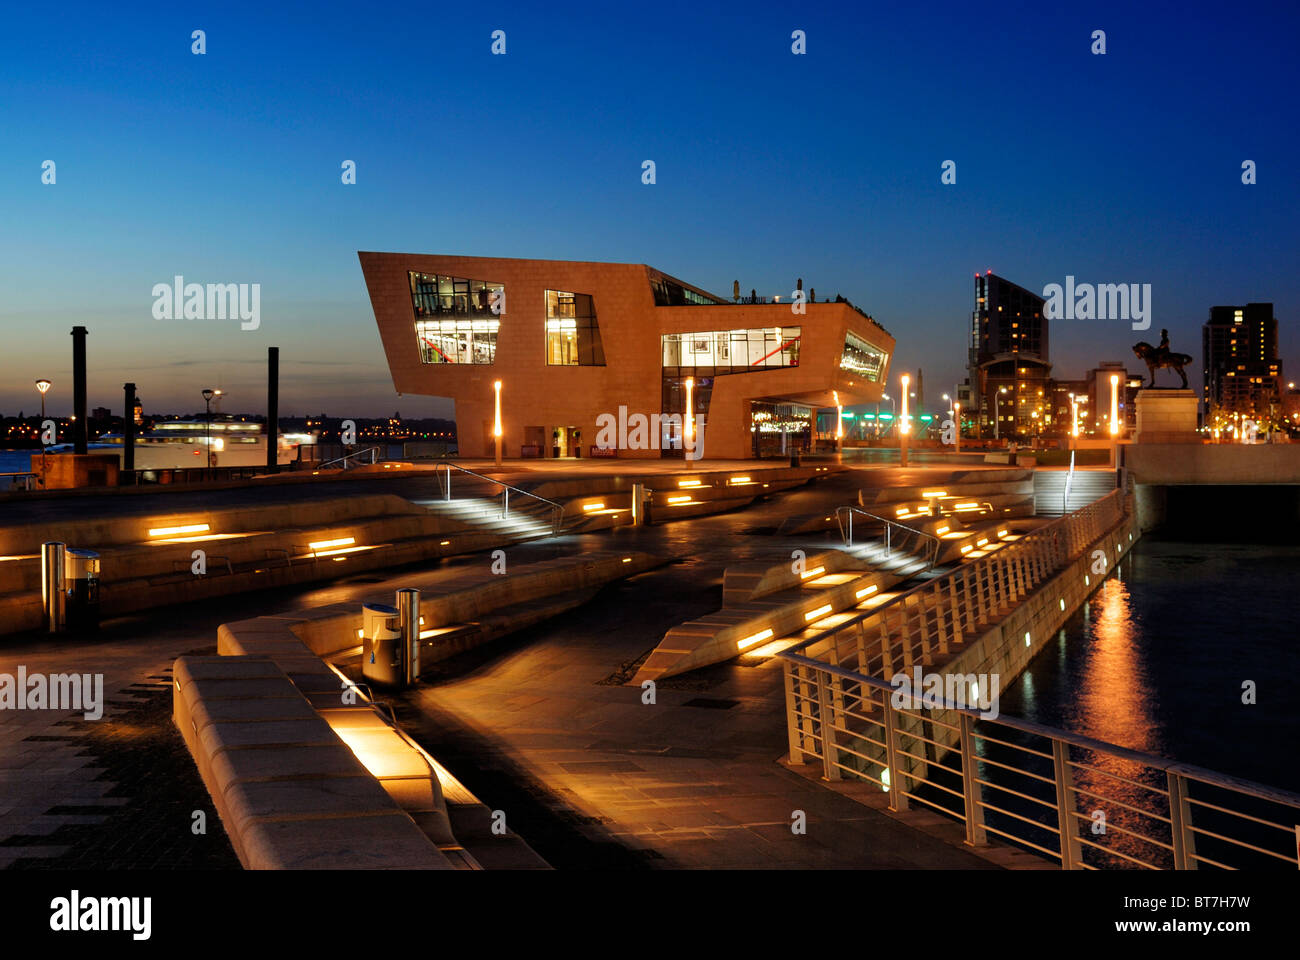 The New Ferry Terminal situated on the banks of the River Mersey at Pier Head in Liverpool which hosts the Beatles - Stock Image